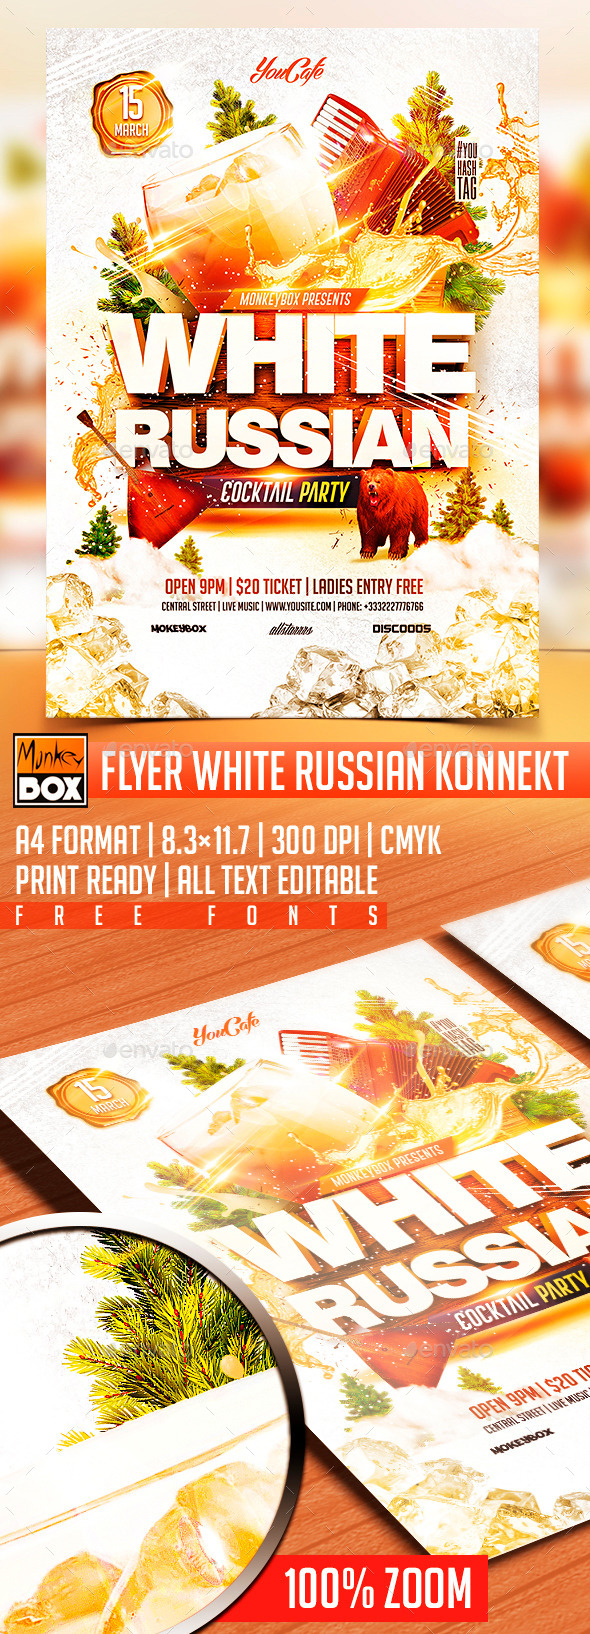 GraphicRiver Flyer White Russian Konnekt 10576645